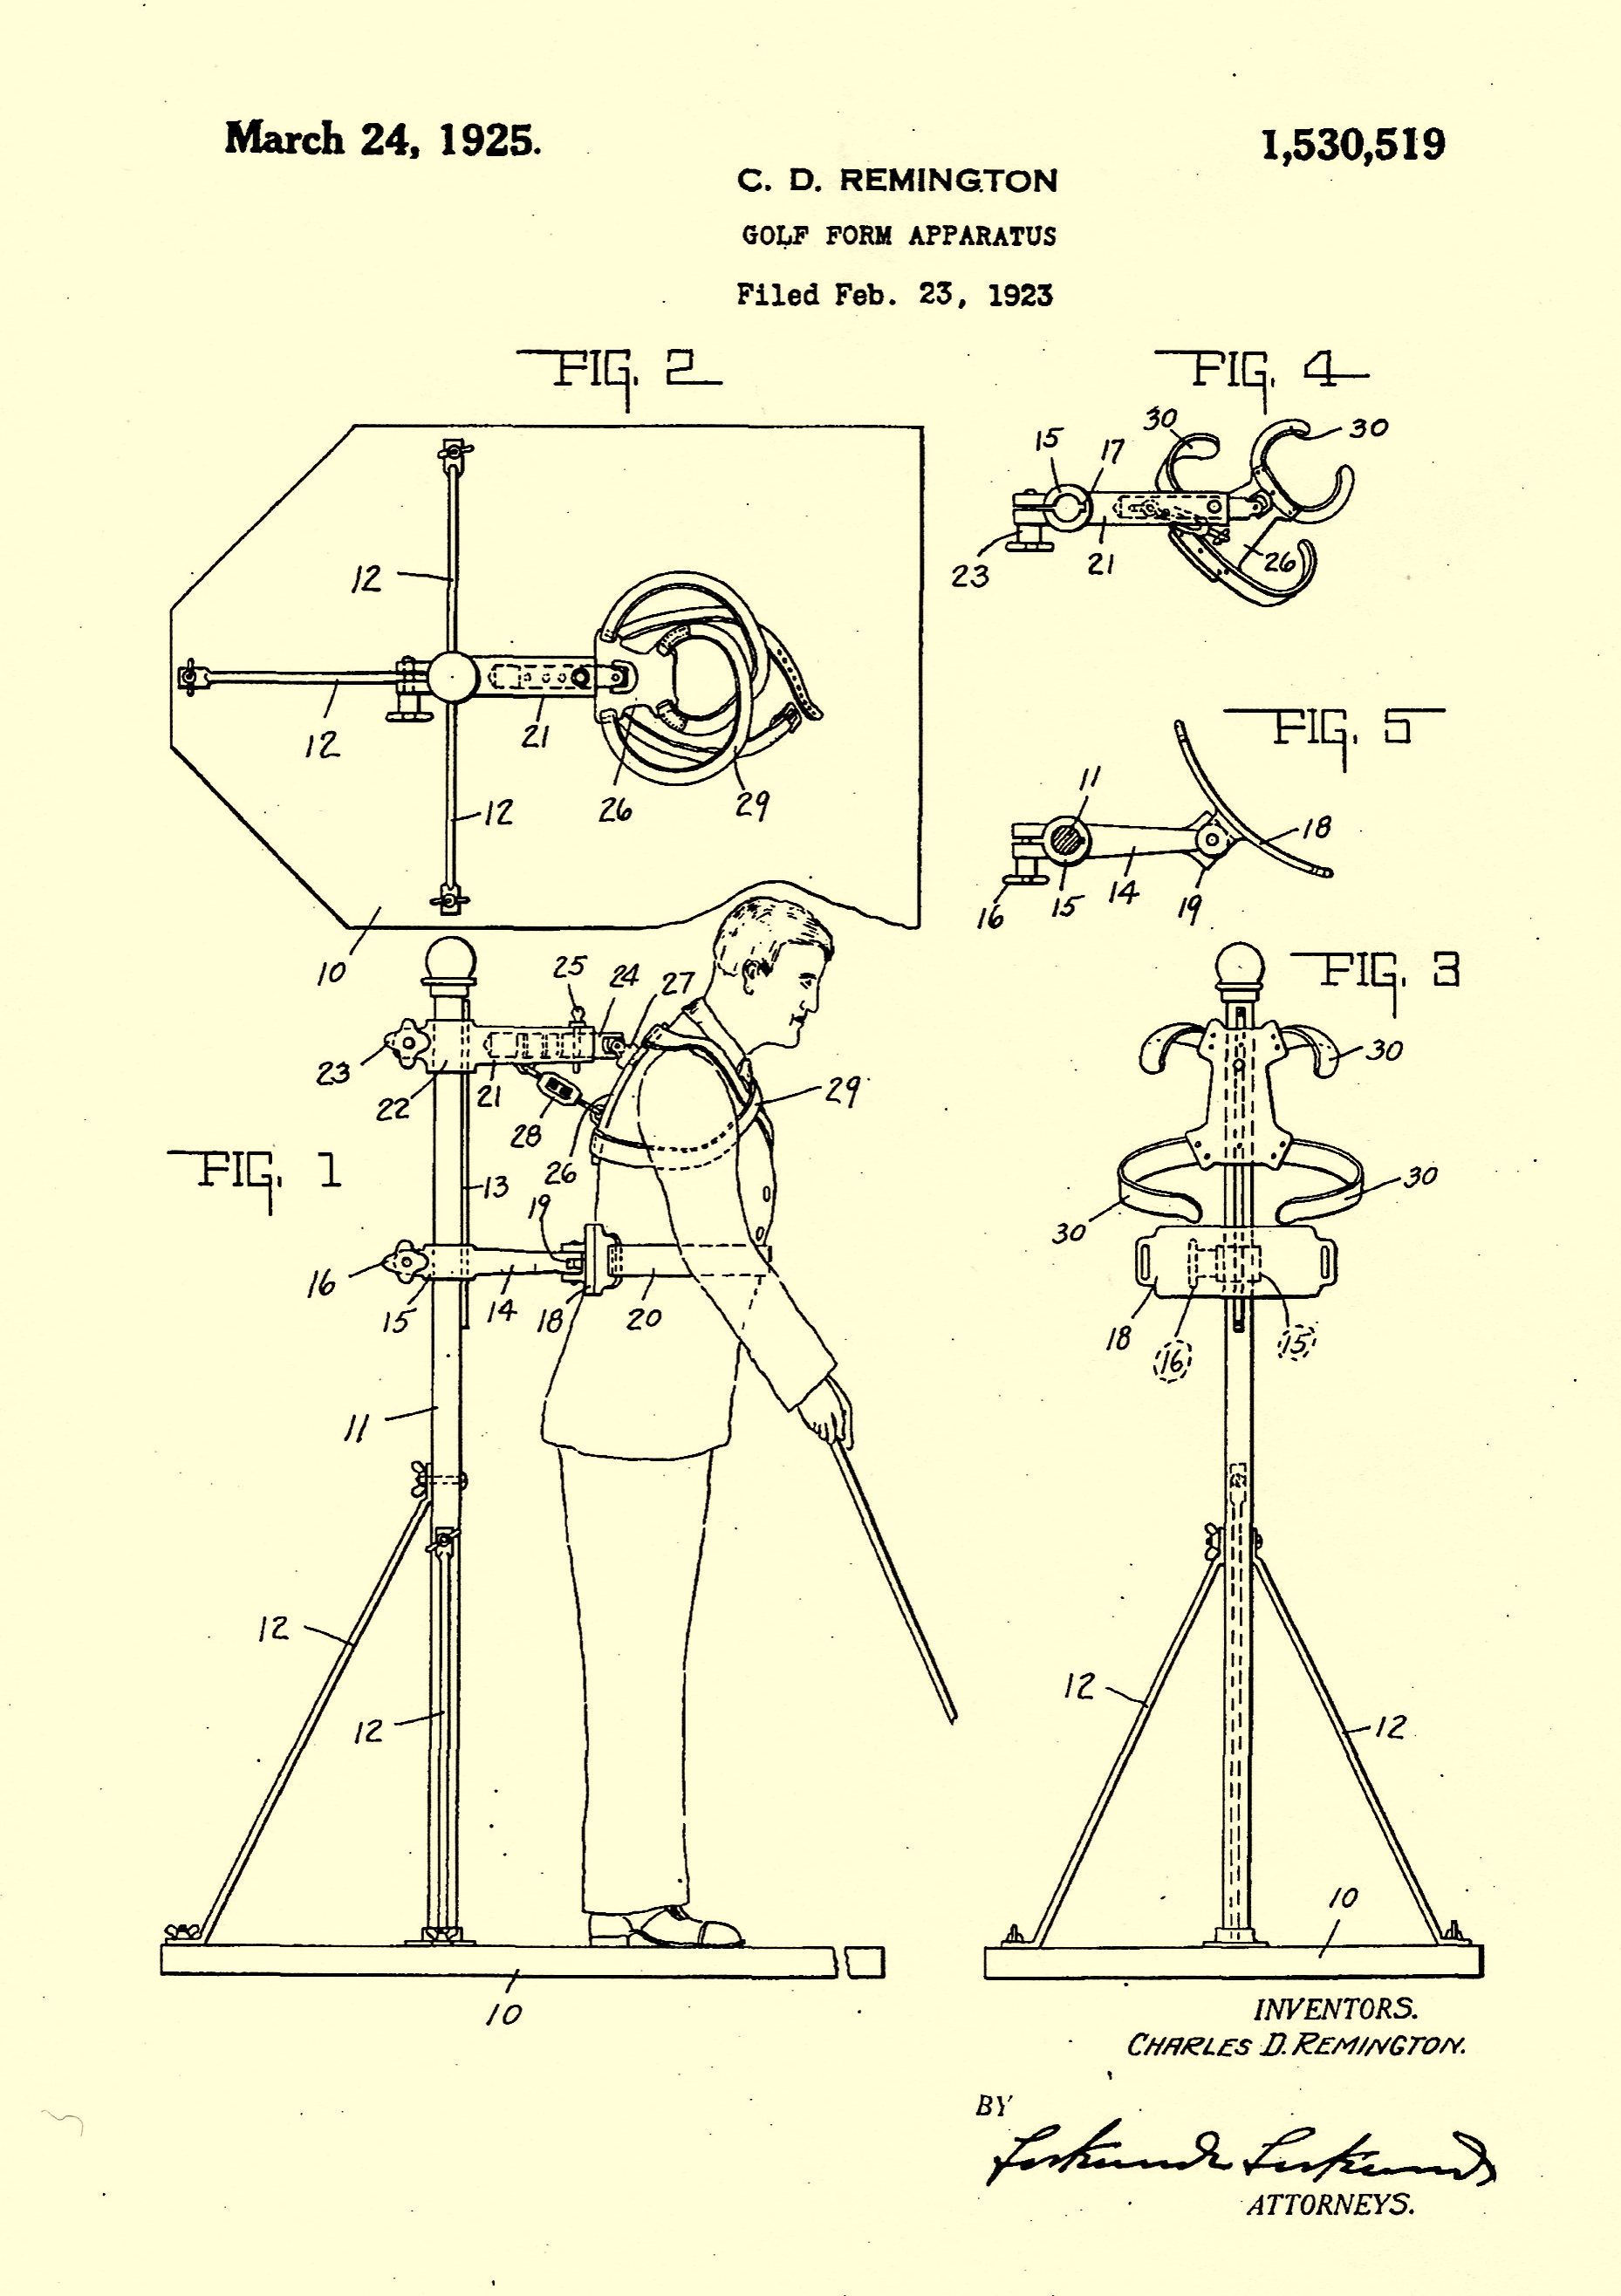 P & L Form Cdremington's Golf Form Apparatus Patented 1925 Our Residential .